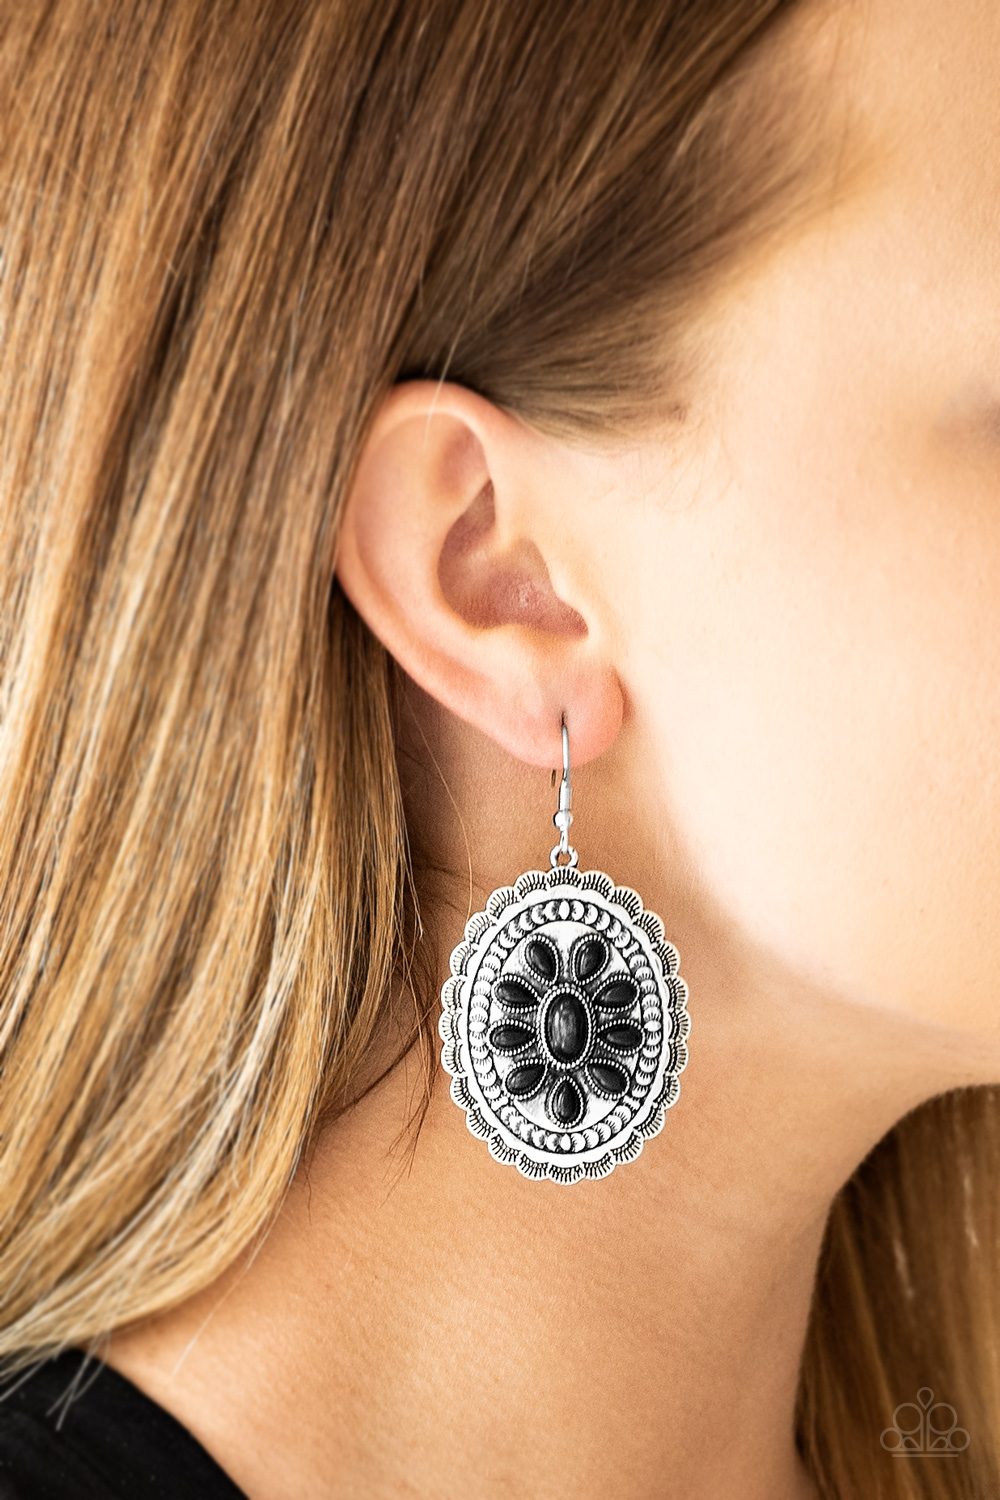 Absolutely Apothecary - Black Earrings $5 my-bling.com